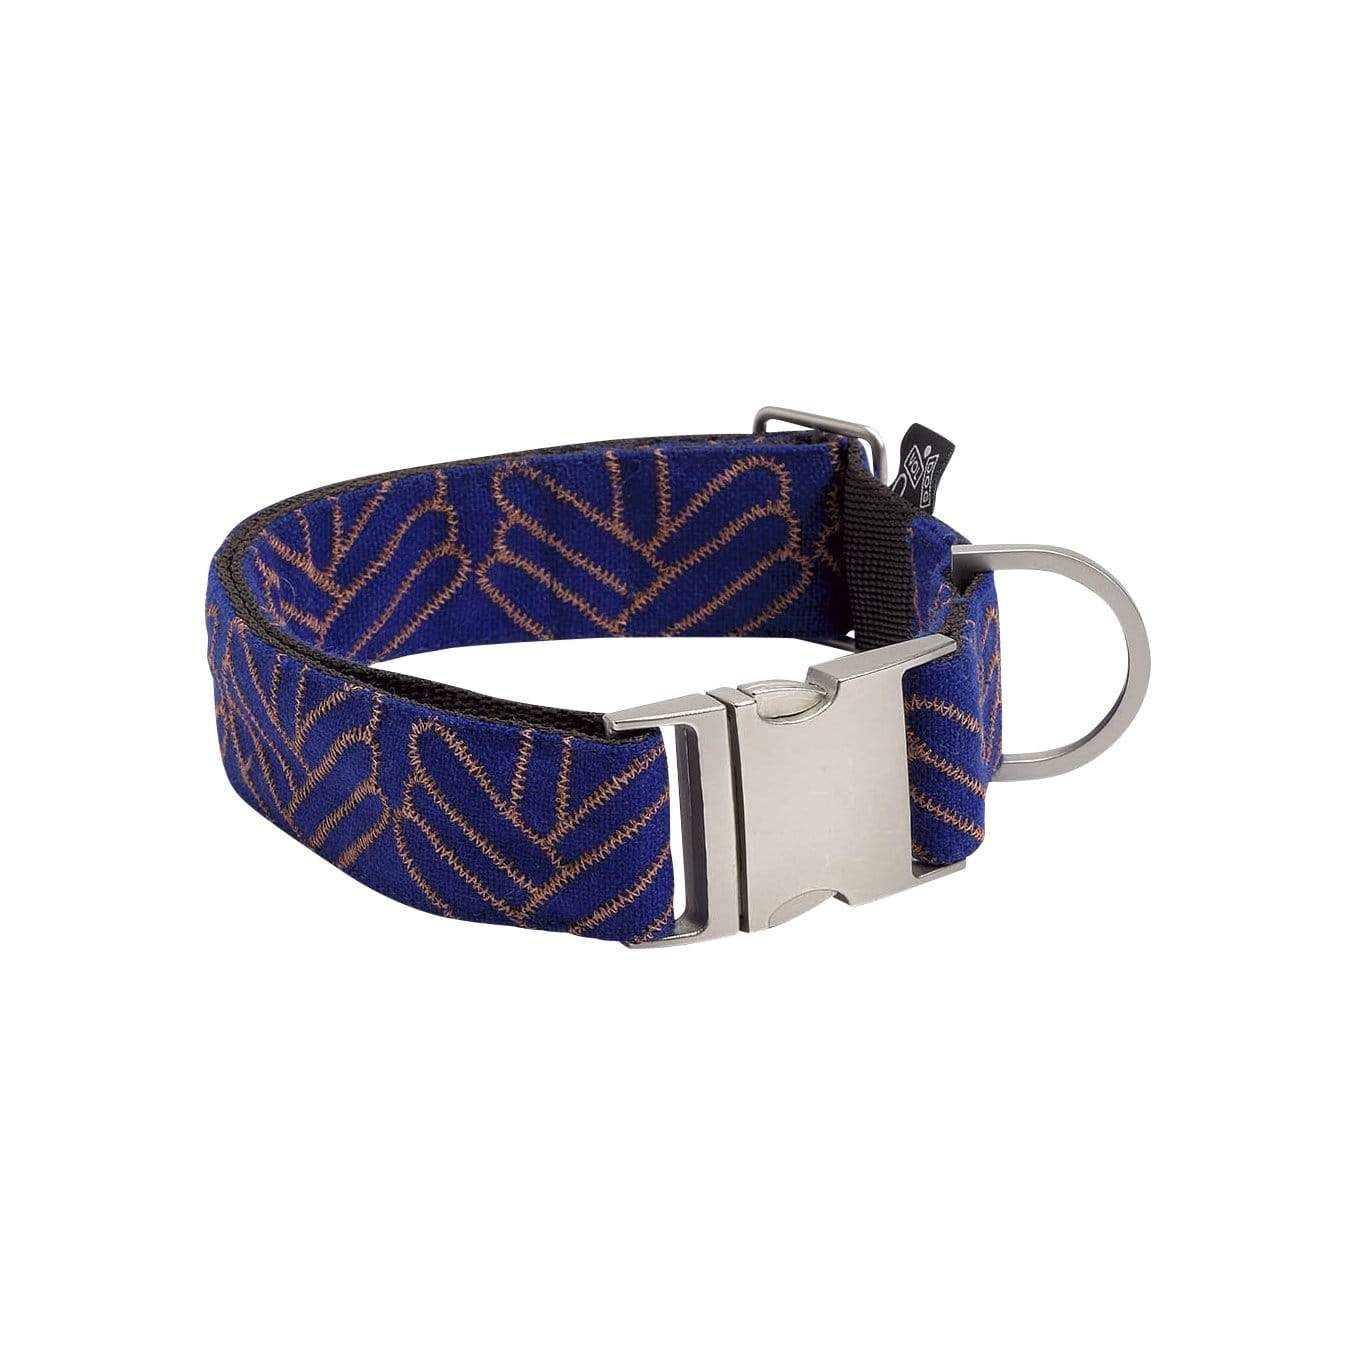 VOLDOG Collars + Harnesses Lola Klein Collar